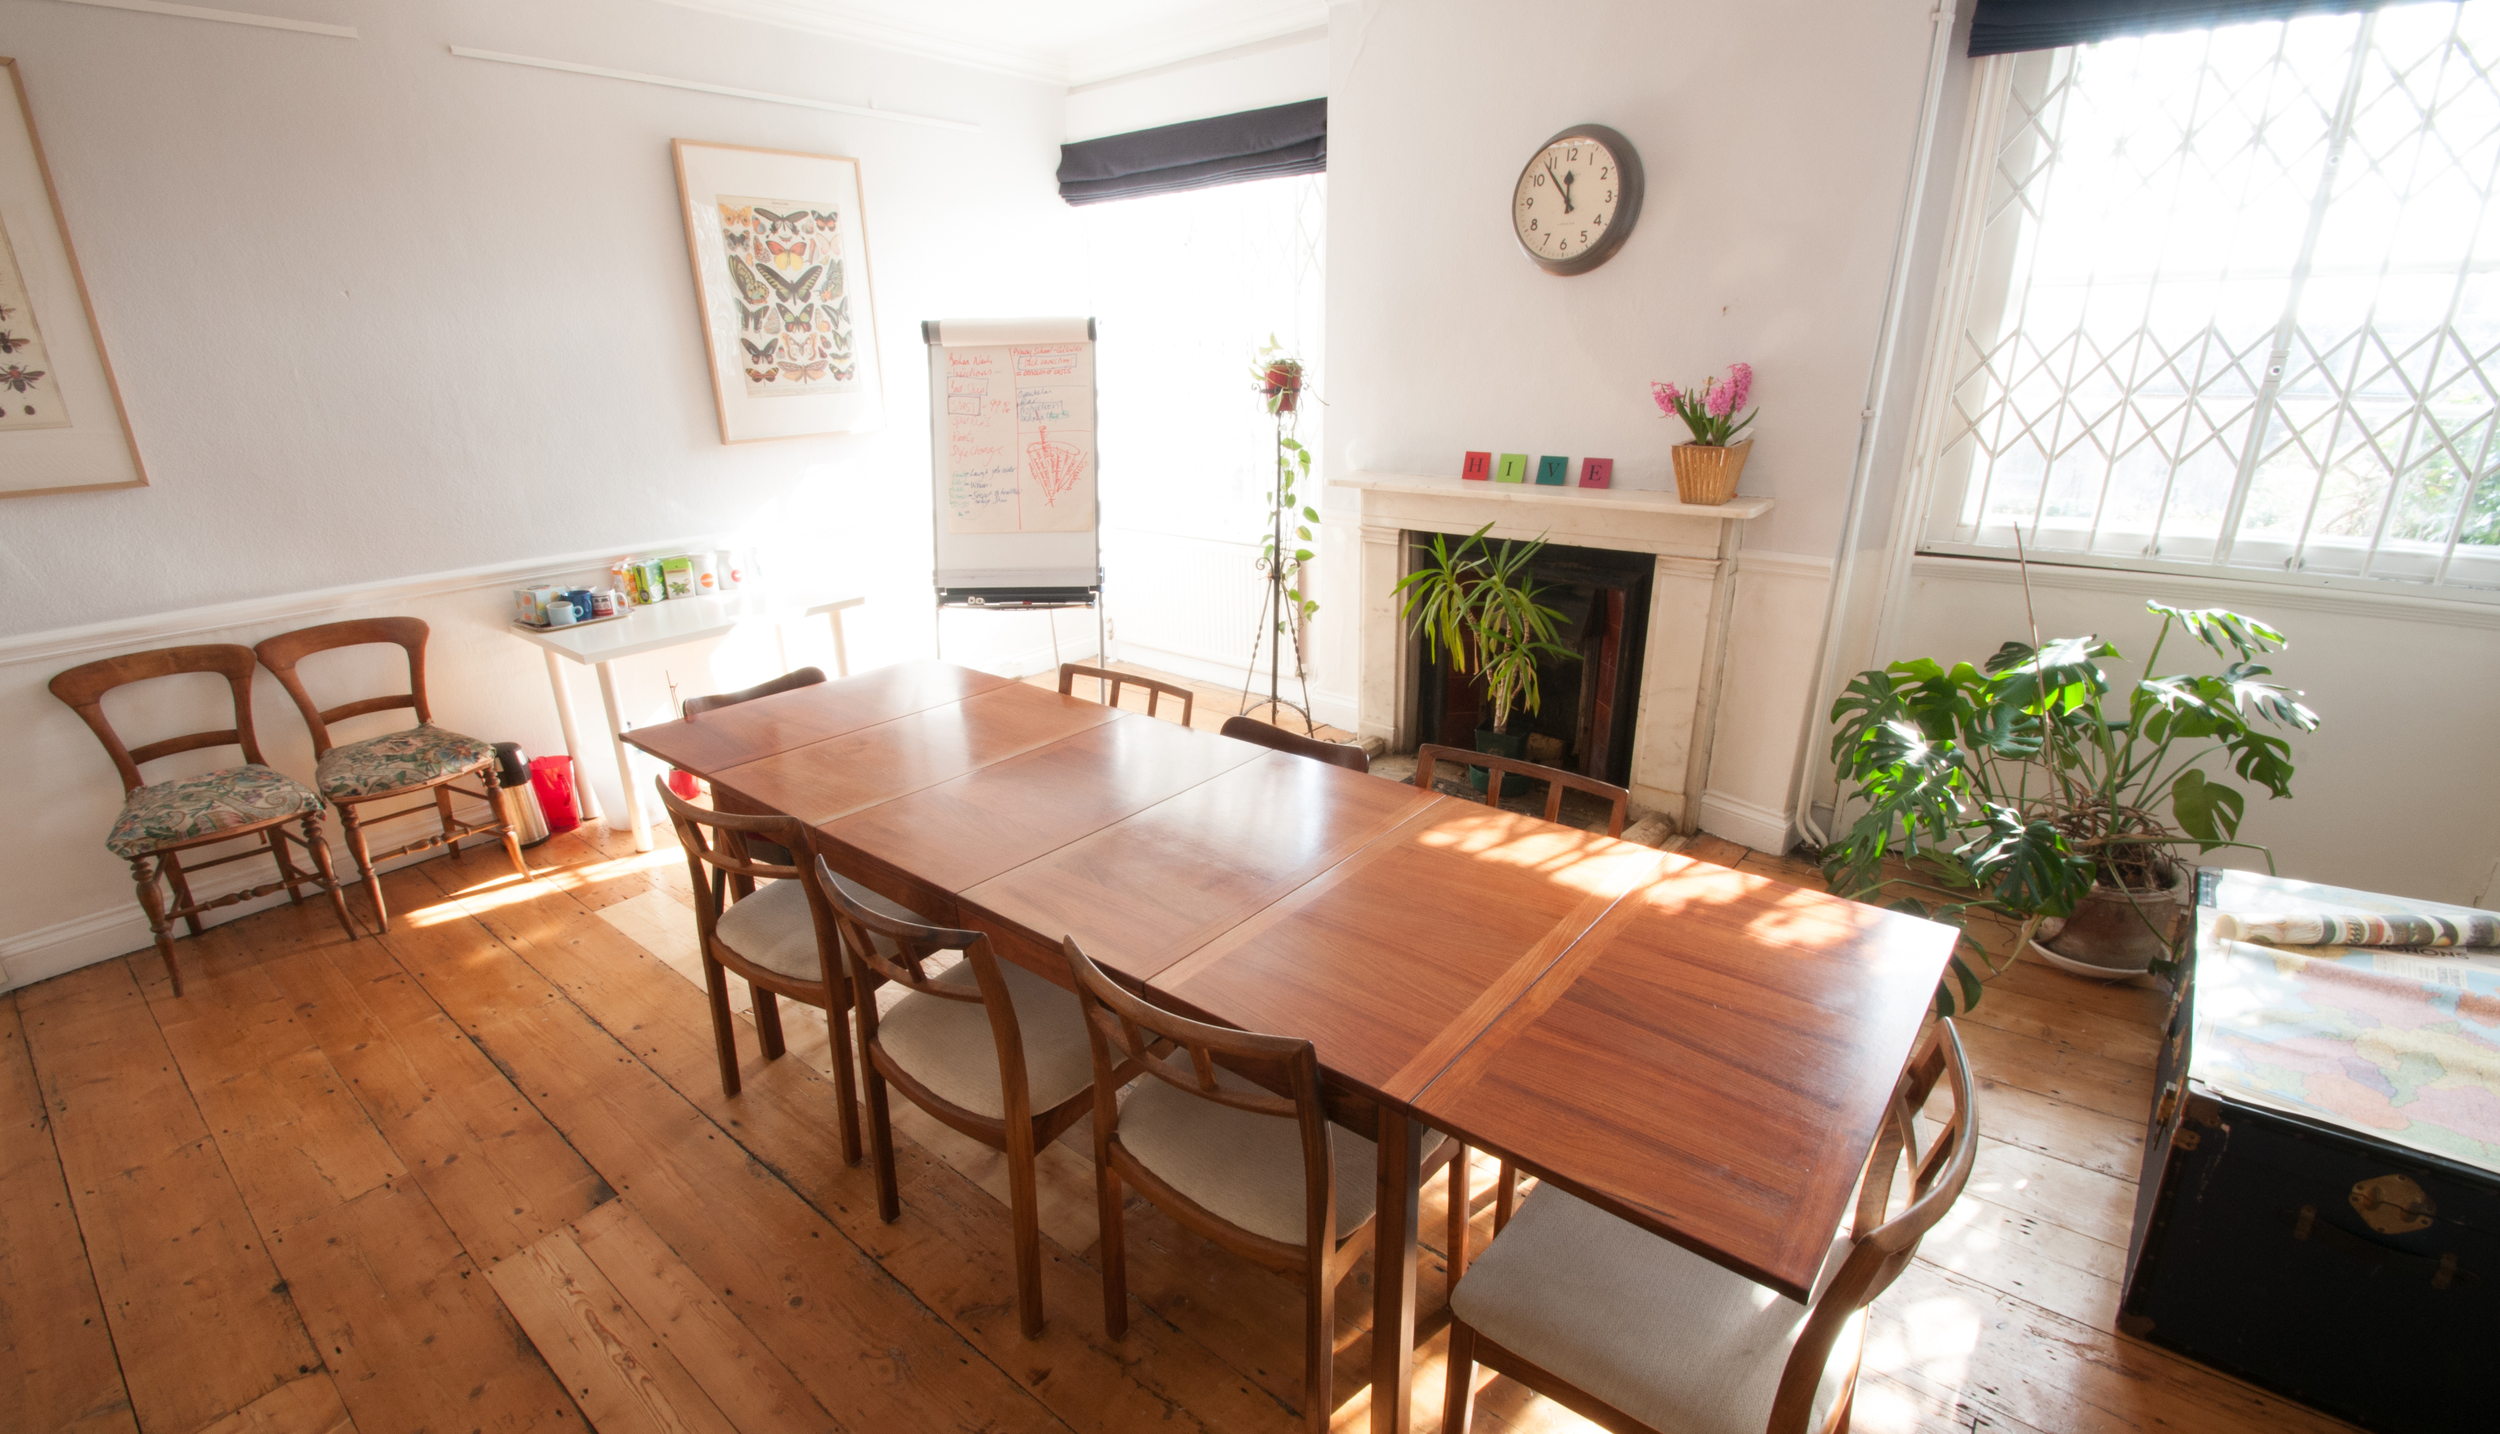 Meeting room for hire in Lewes